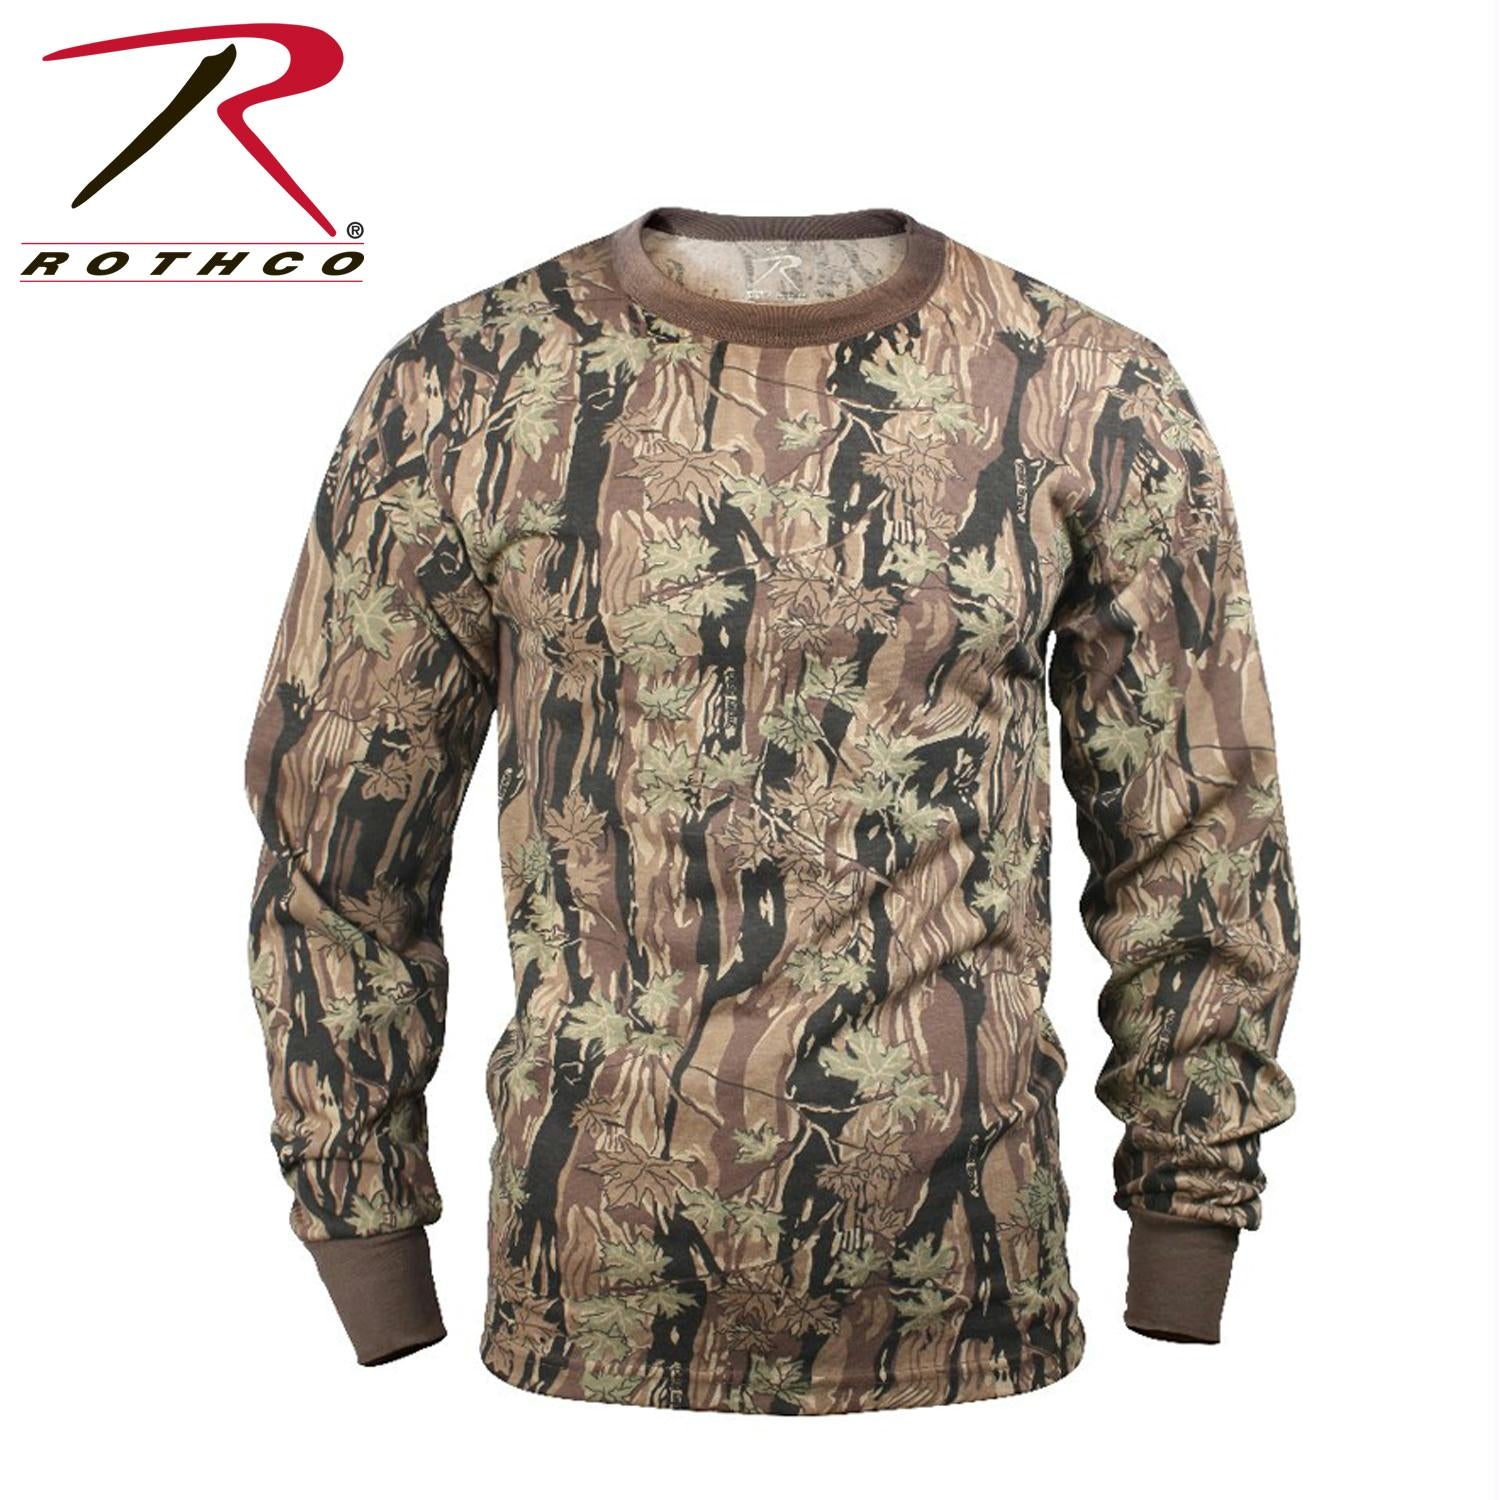 Rothco Long Sleeve Camo T-Shirt - Smokey Branch Camo / 3XL